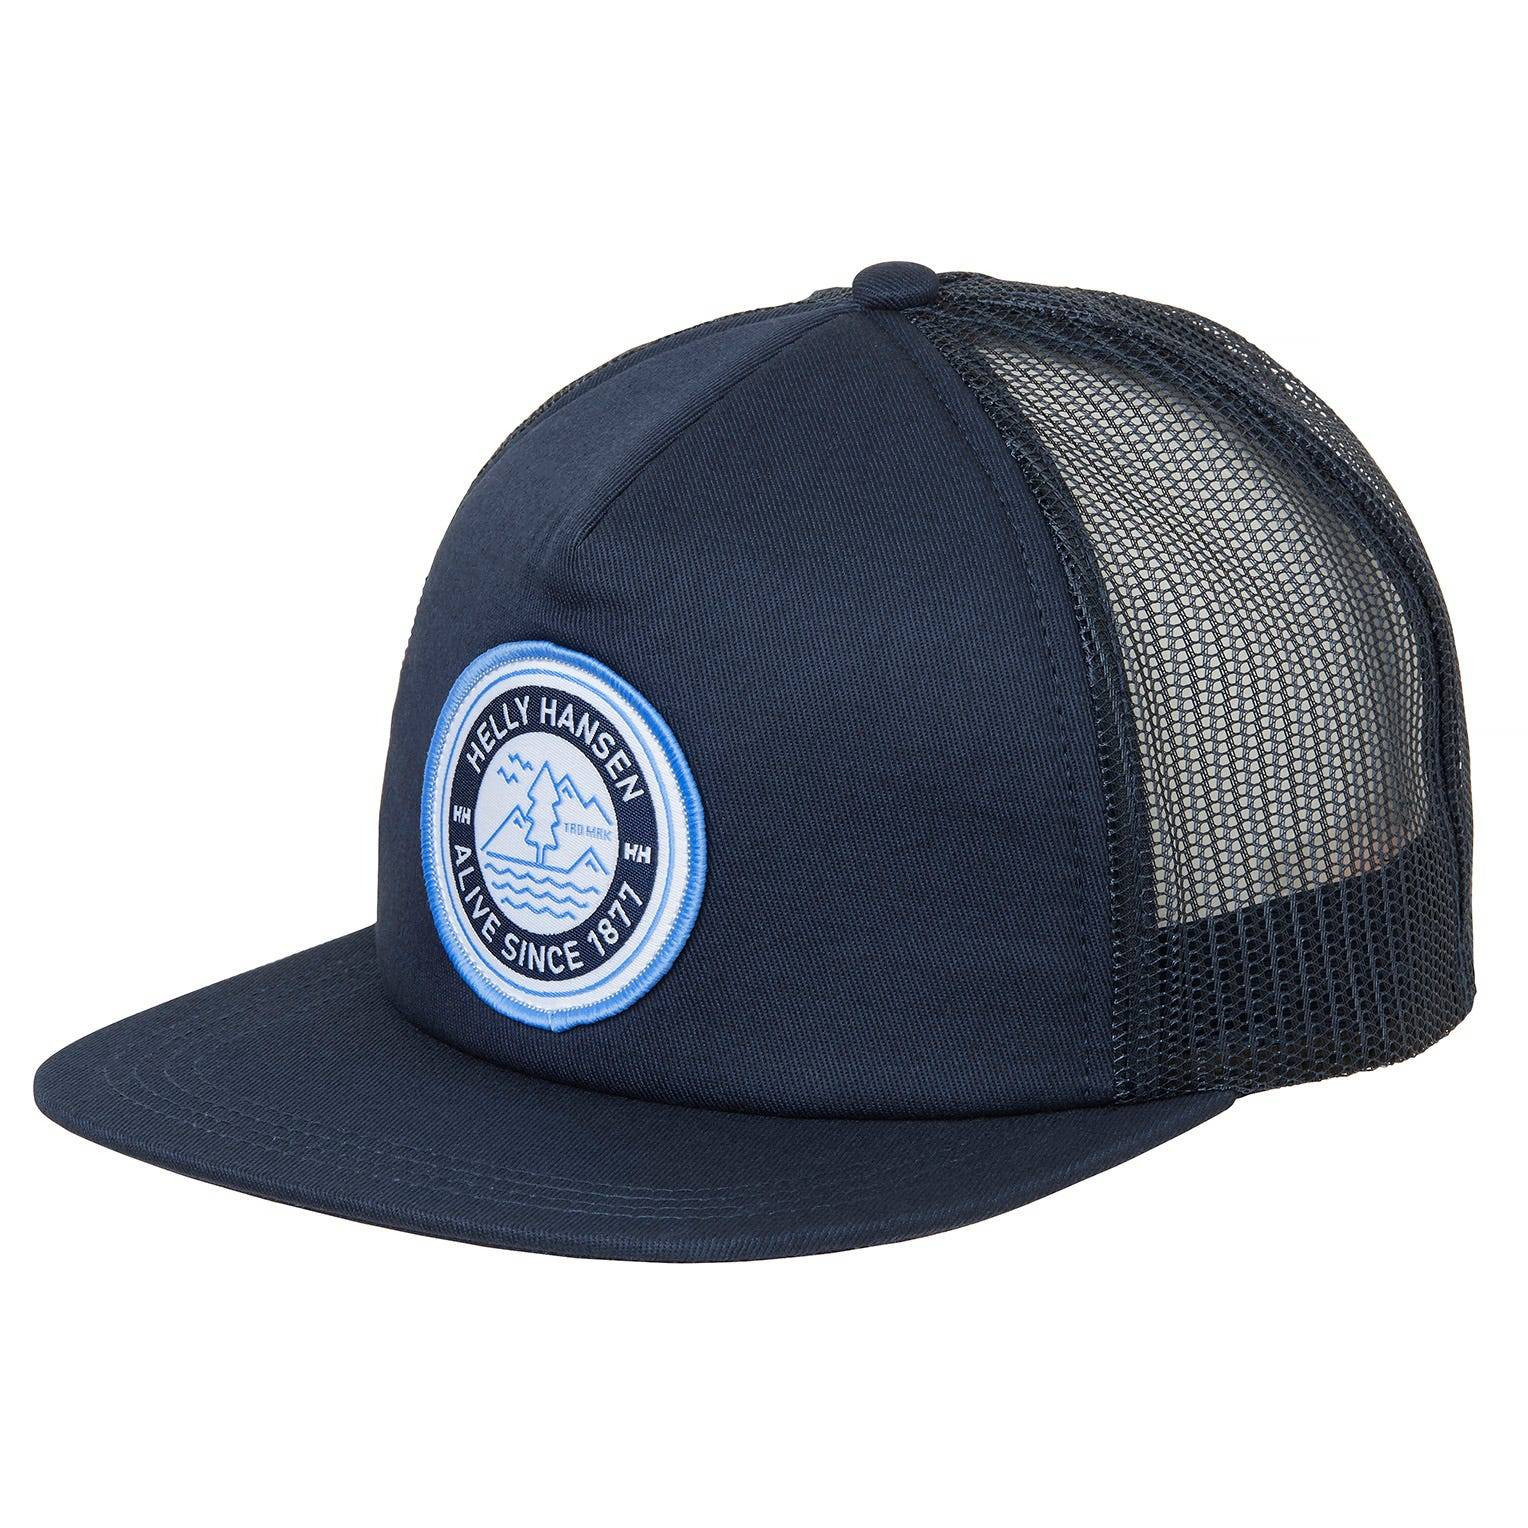 Helly Hansen Flatbrim Trucker Cap Blue STD